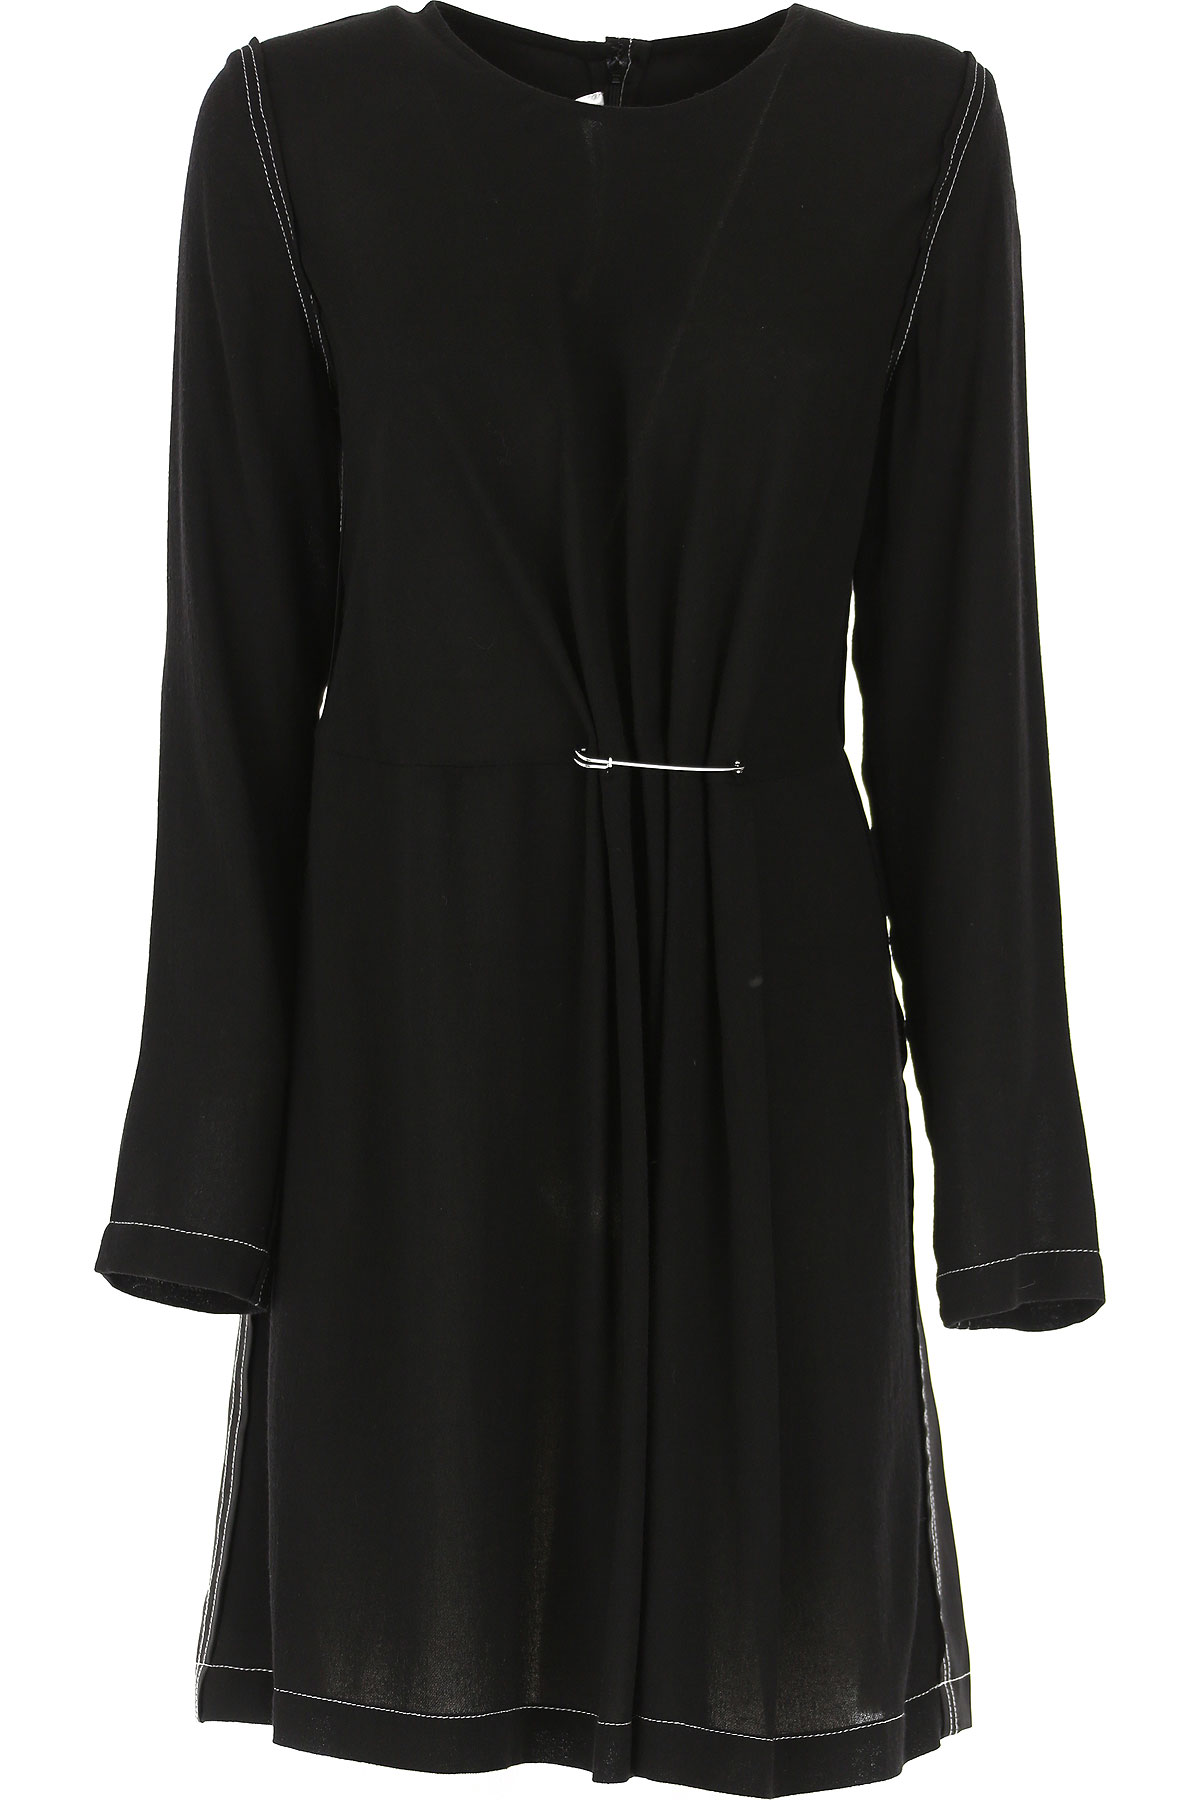 Alexander McQueen McQ Dress for Women, Evening Cocktail Party On Sale, Black, viscosa, 2019, 4 6 8